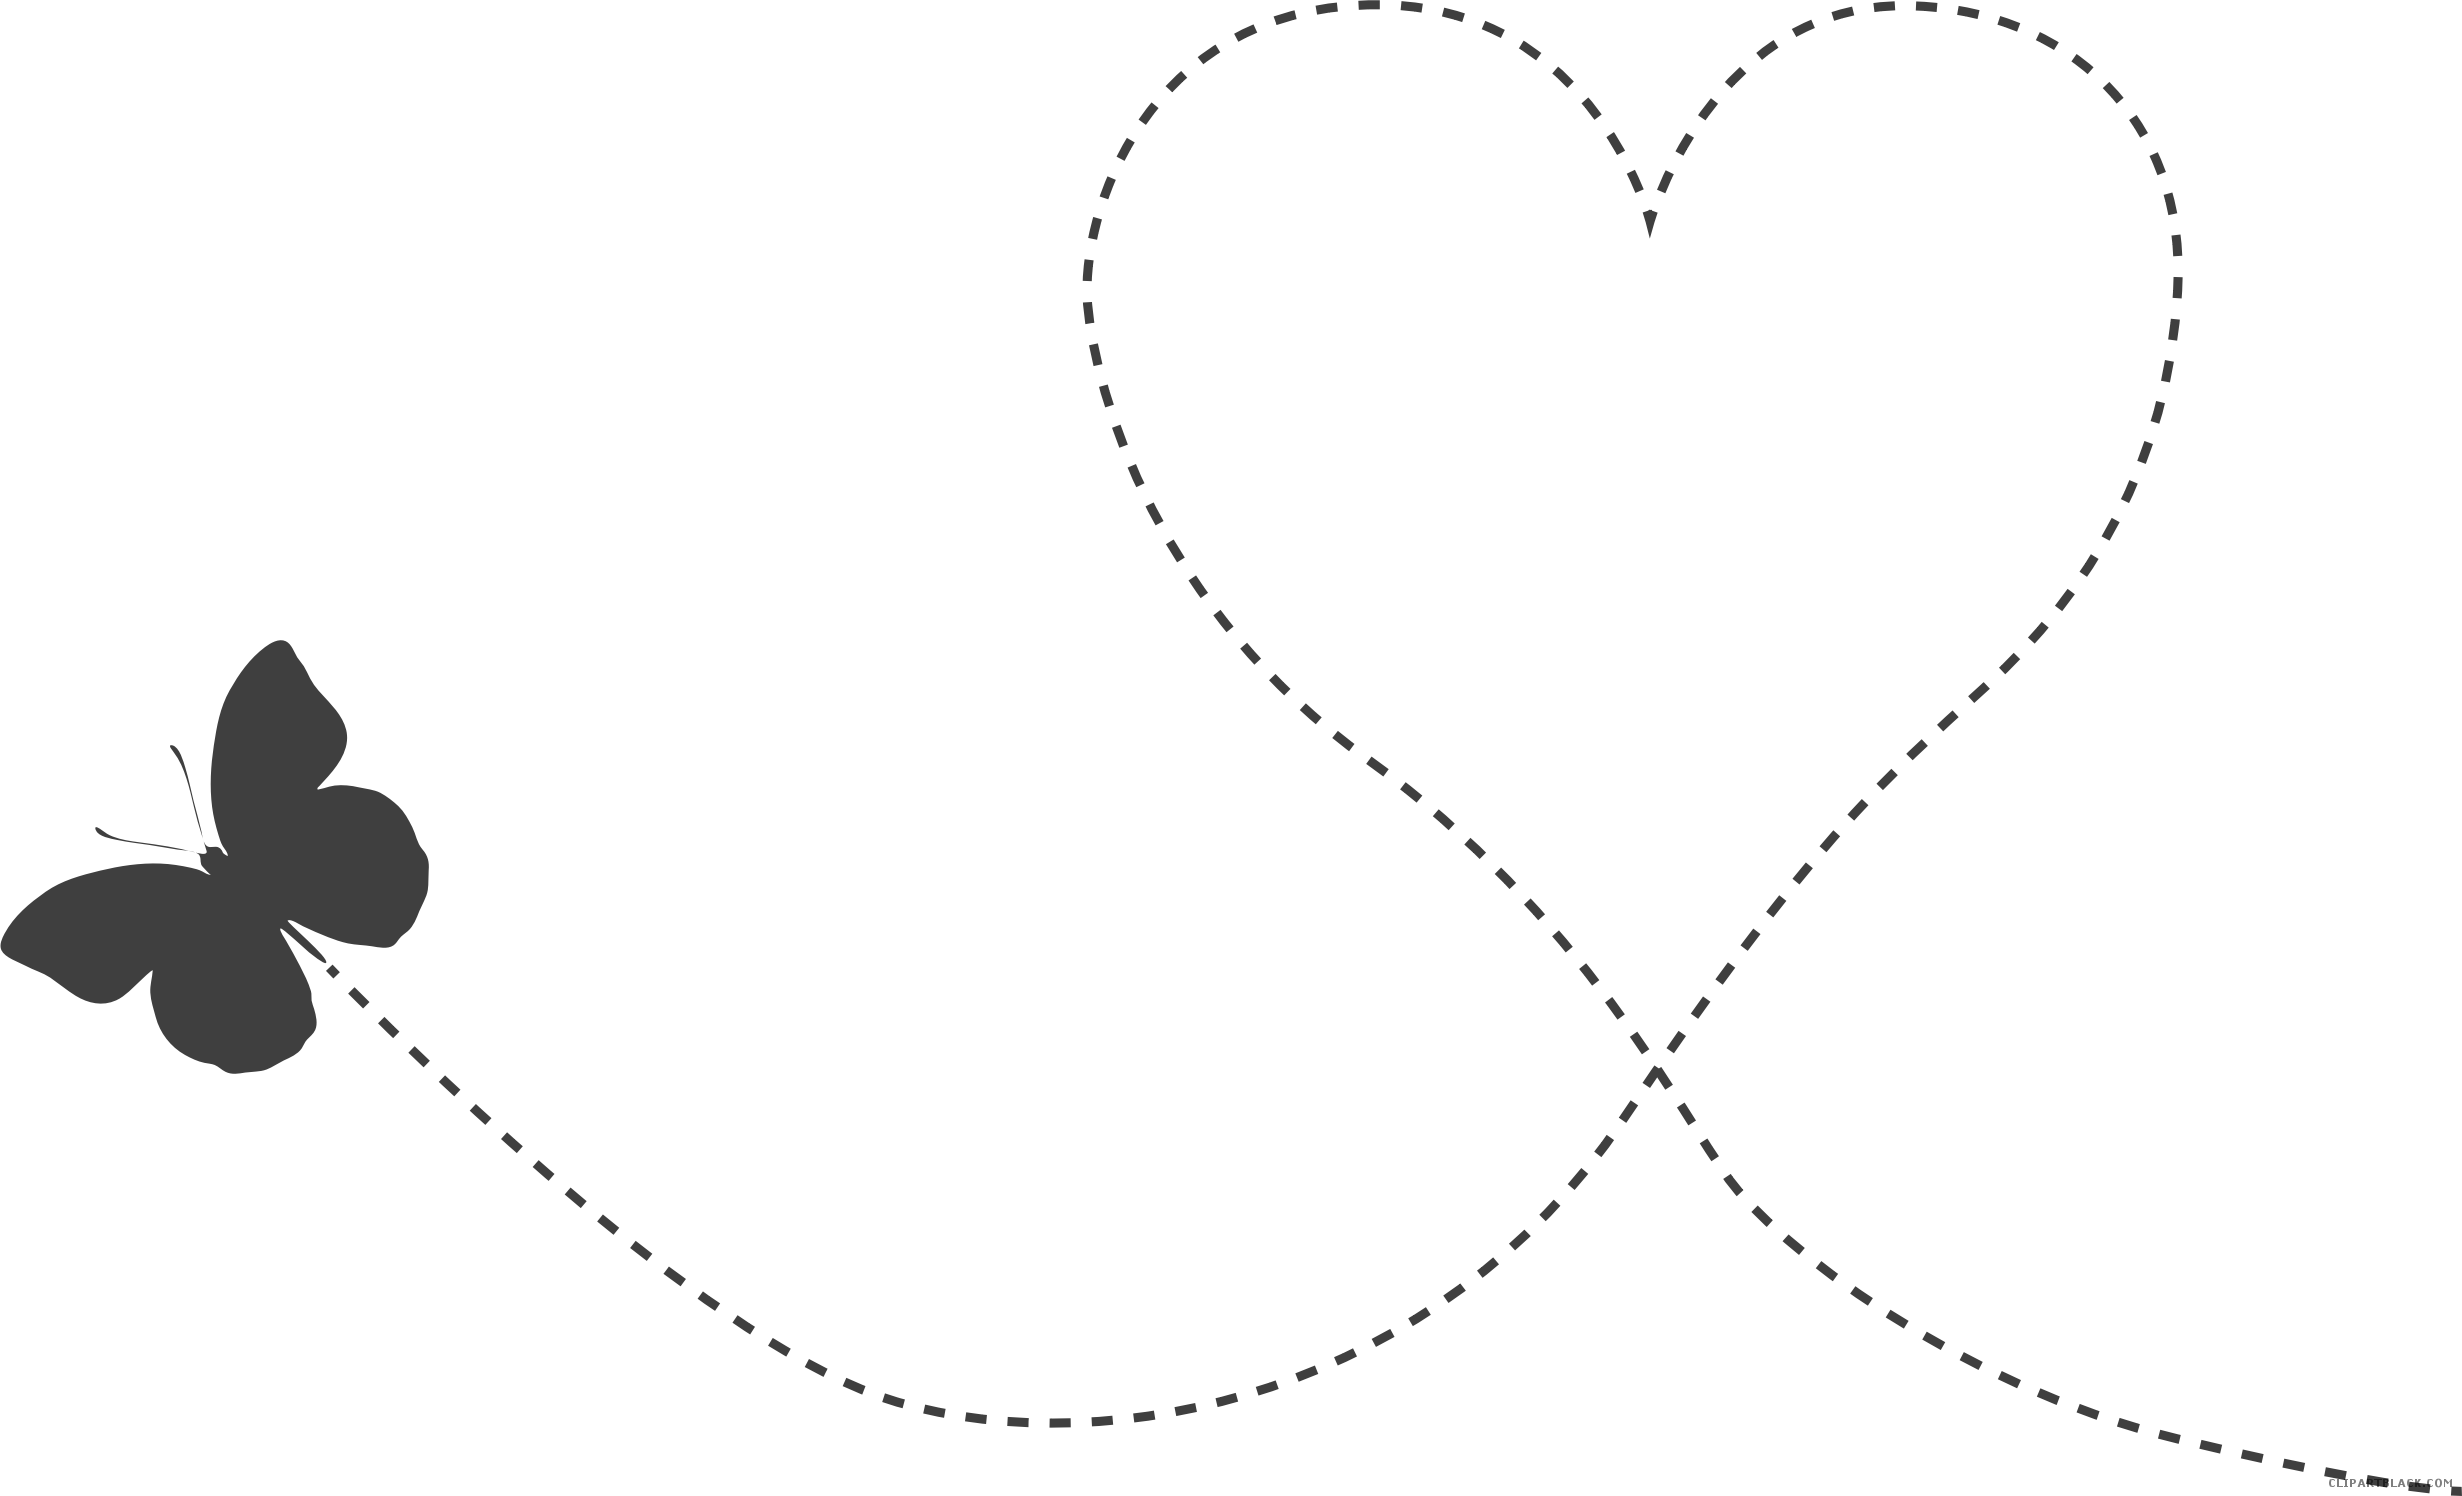 Real heart clipart black and white svg black and white library Butterfly Heart Clipart - ClipartBlack.com svg black and white library